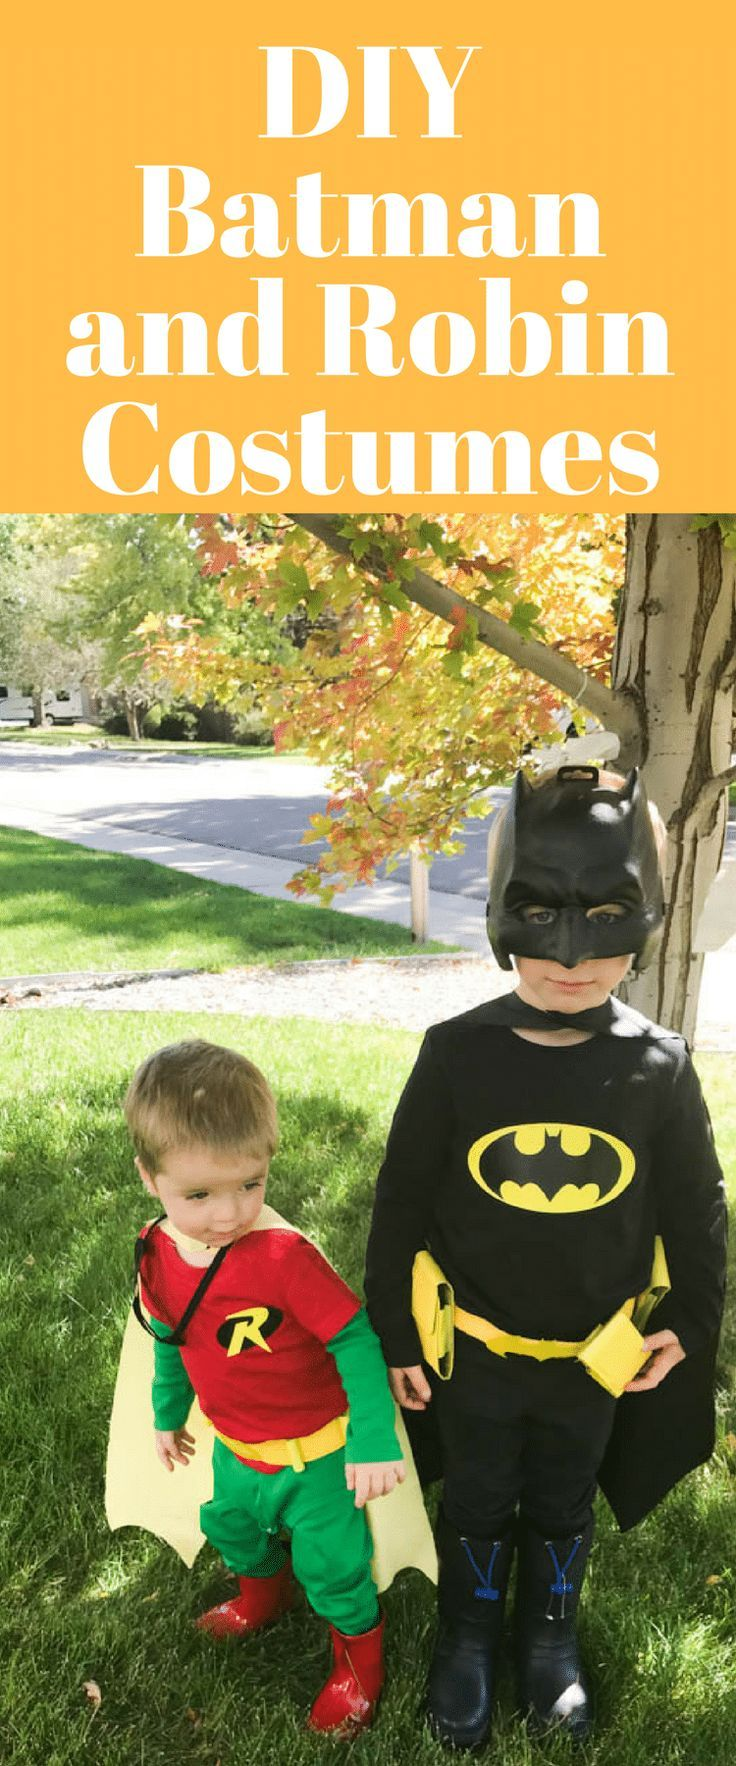 Diy batman and robin costumes for kids pinterest fandeluxe Choice Image